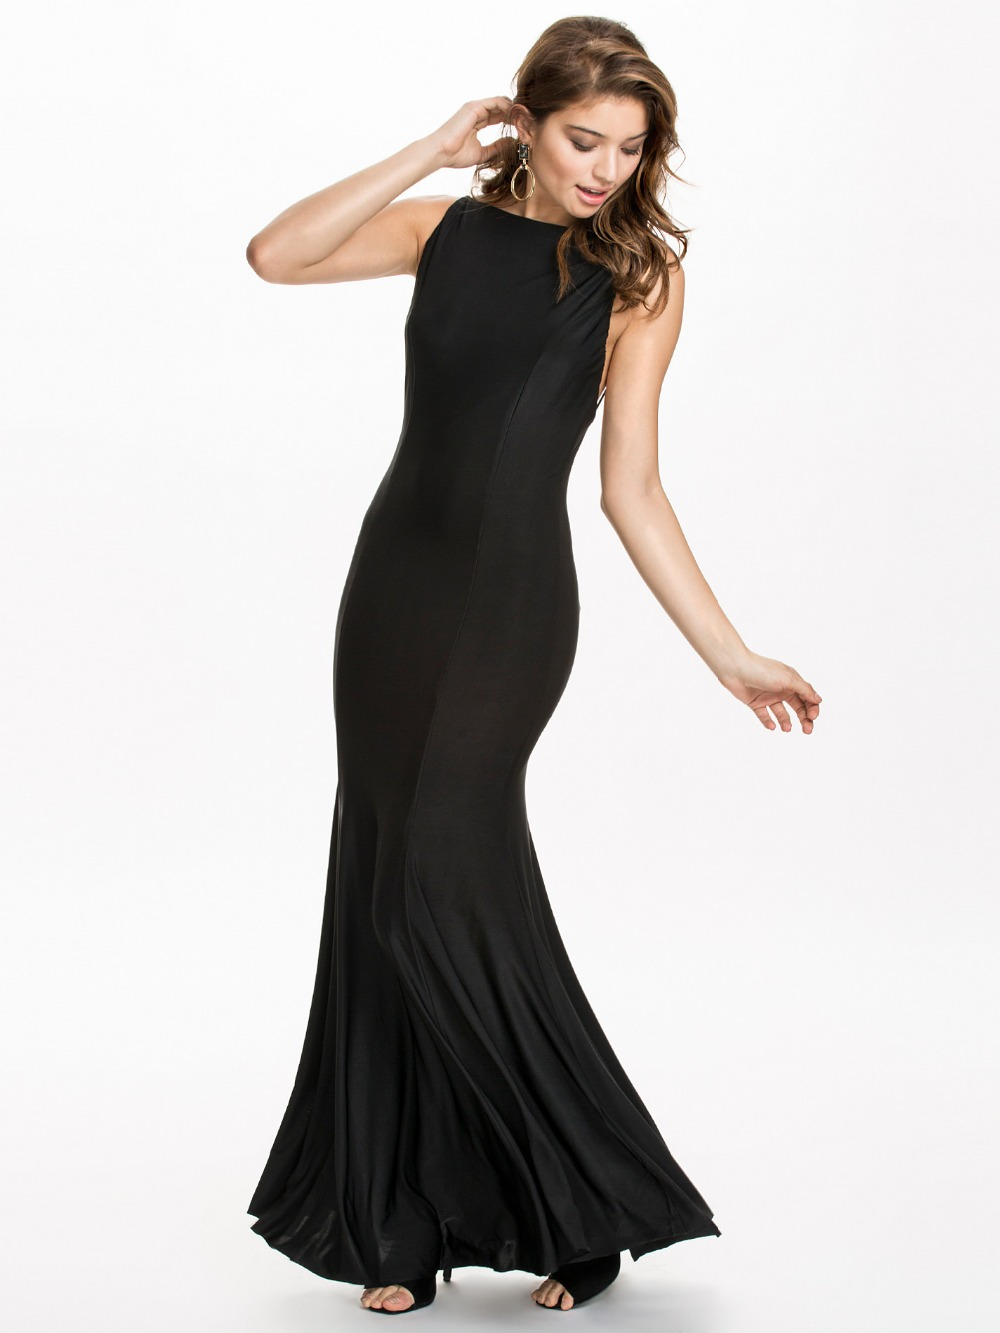 R70215 Hot selling Women dress 2015 Backless long dress ohyeah Sexy club wear top sale black Summer dress new style long dress(China (Mainland))